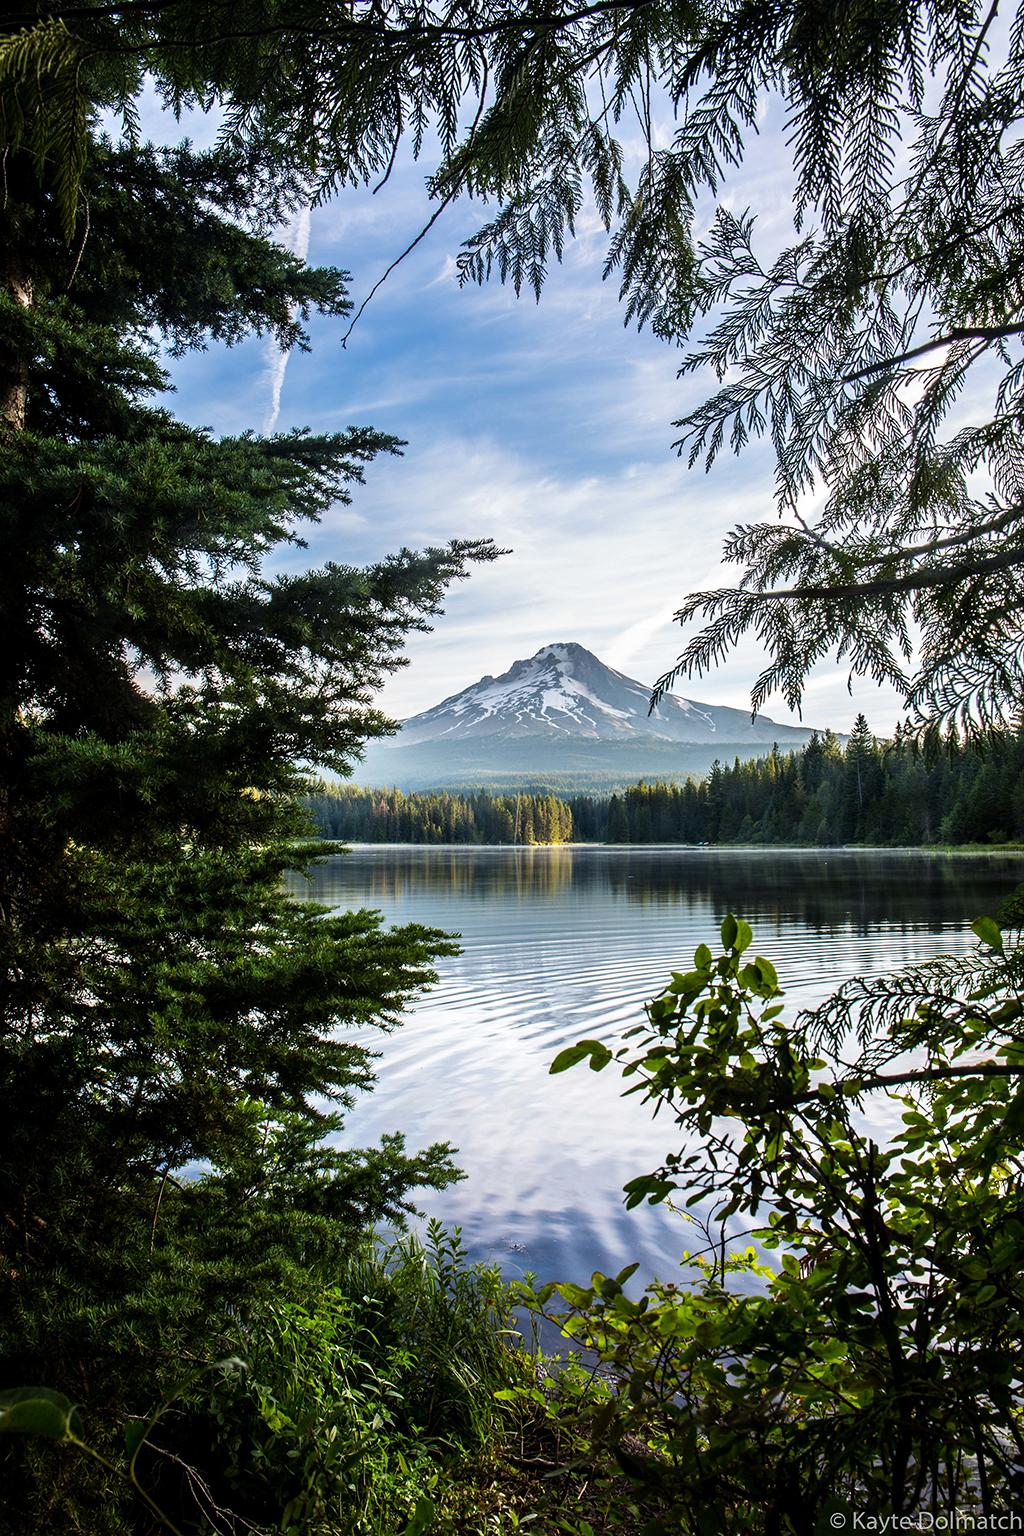 """Today's Photo Of The Day is """"Nature's Window"""" by Kayte Dolmatch. Location: Trillium Lake, Oregon."""